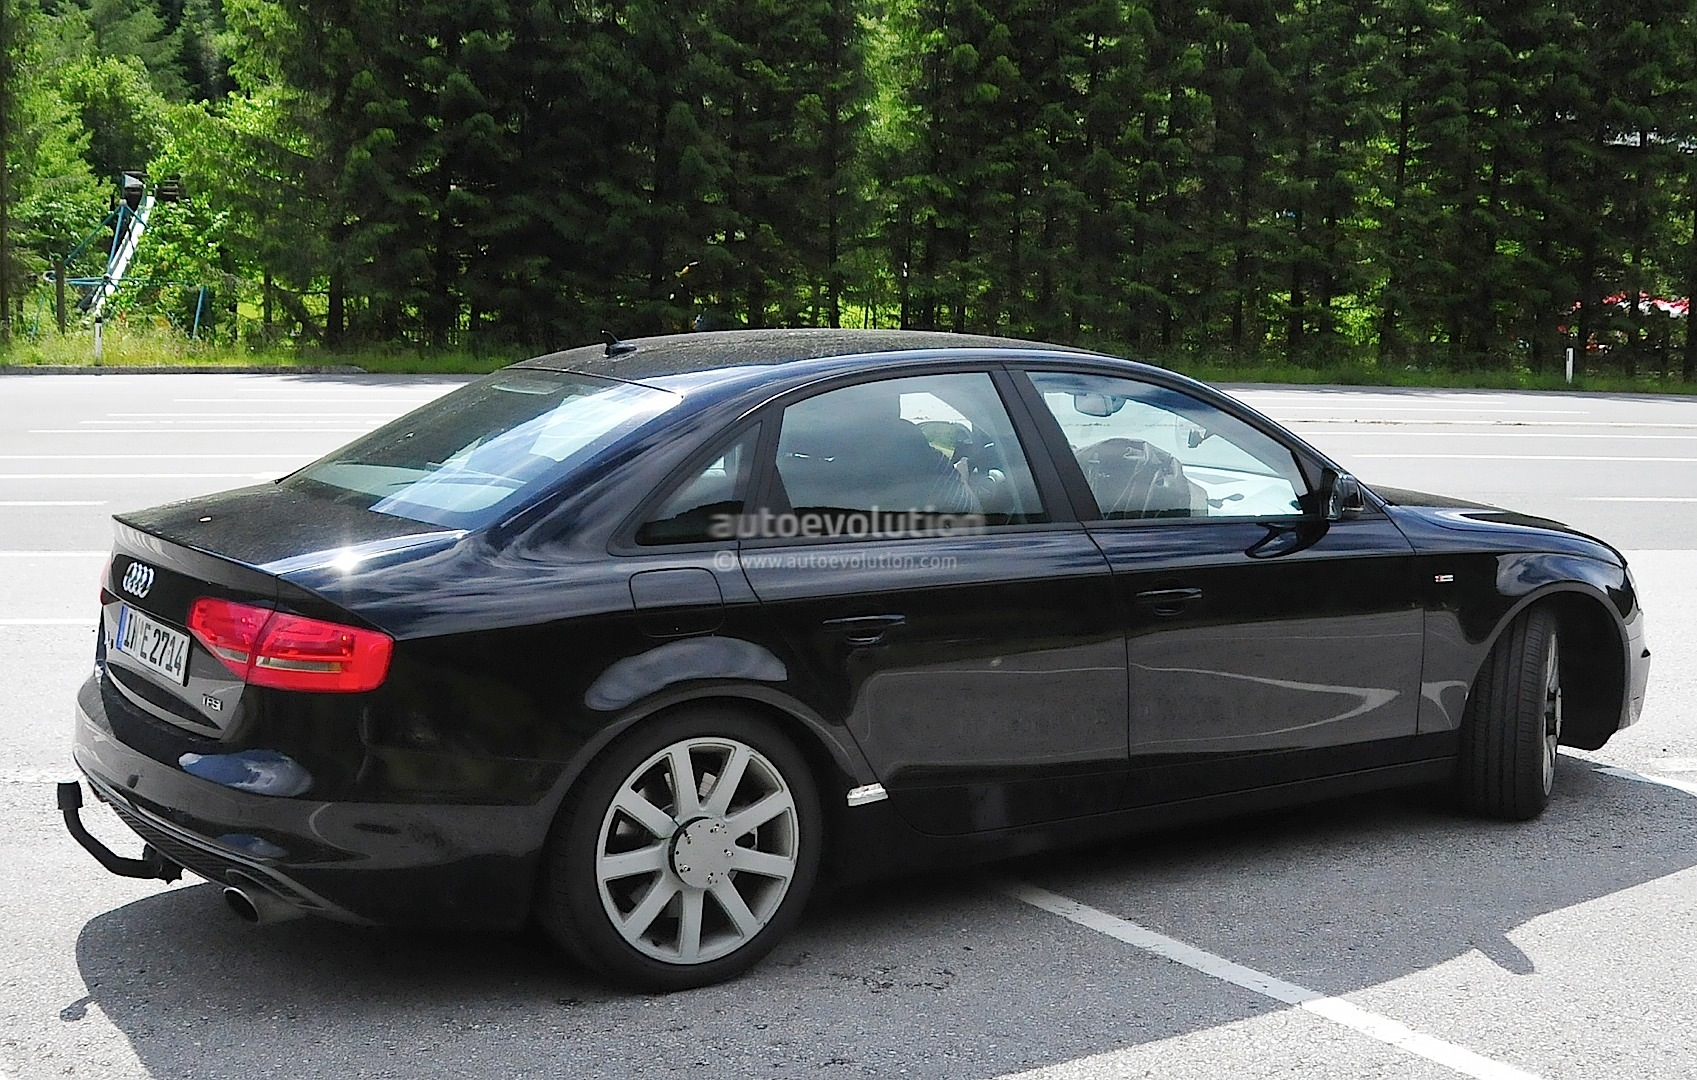 2016 audi a4 spyshots reveal new mmi infotainment display autoevolution. Black Bedroom Furniture Sets. Home Design Ideas